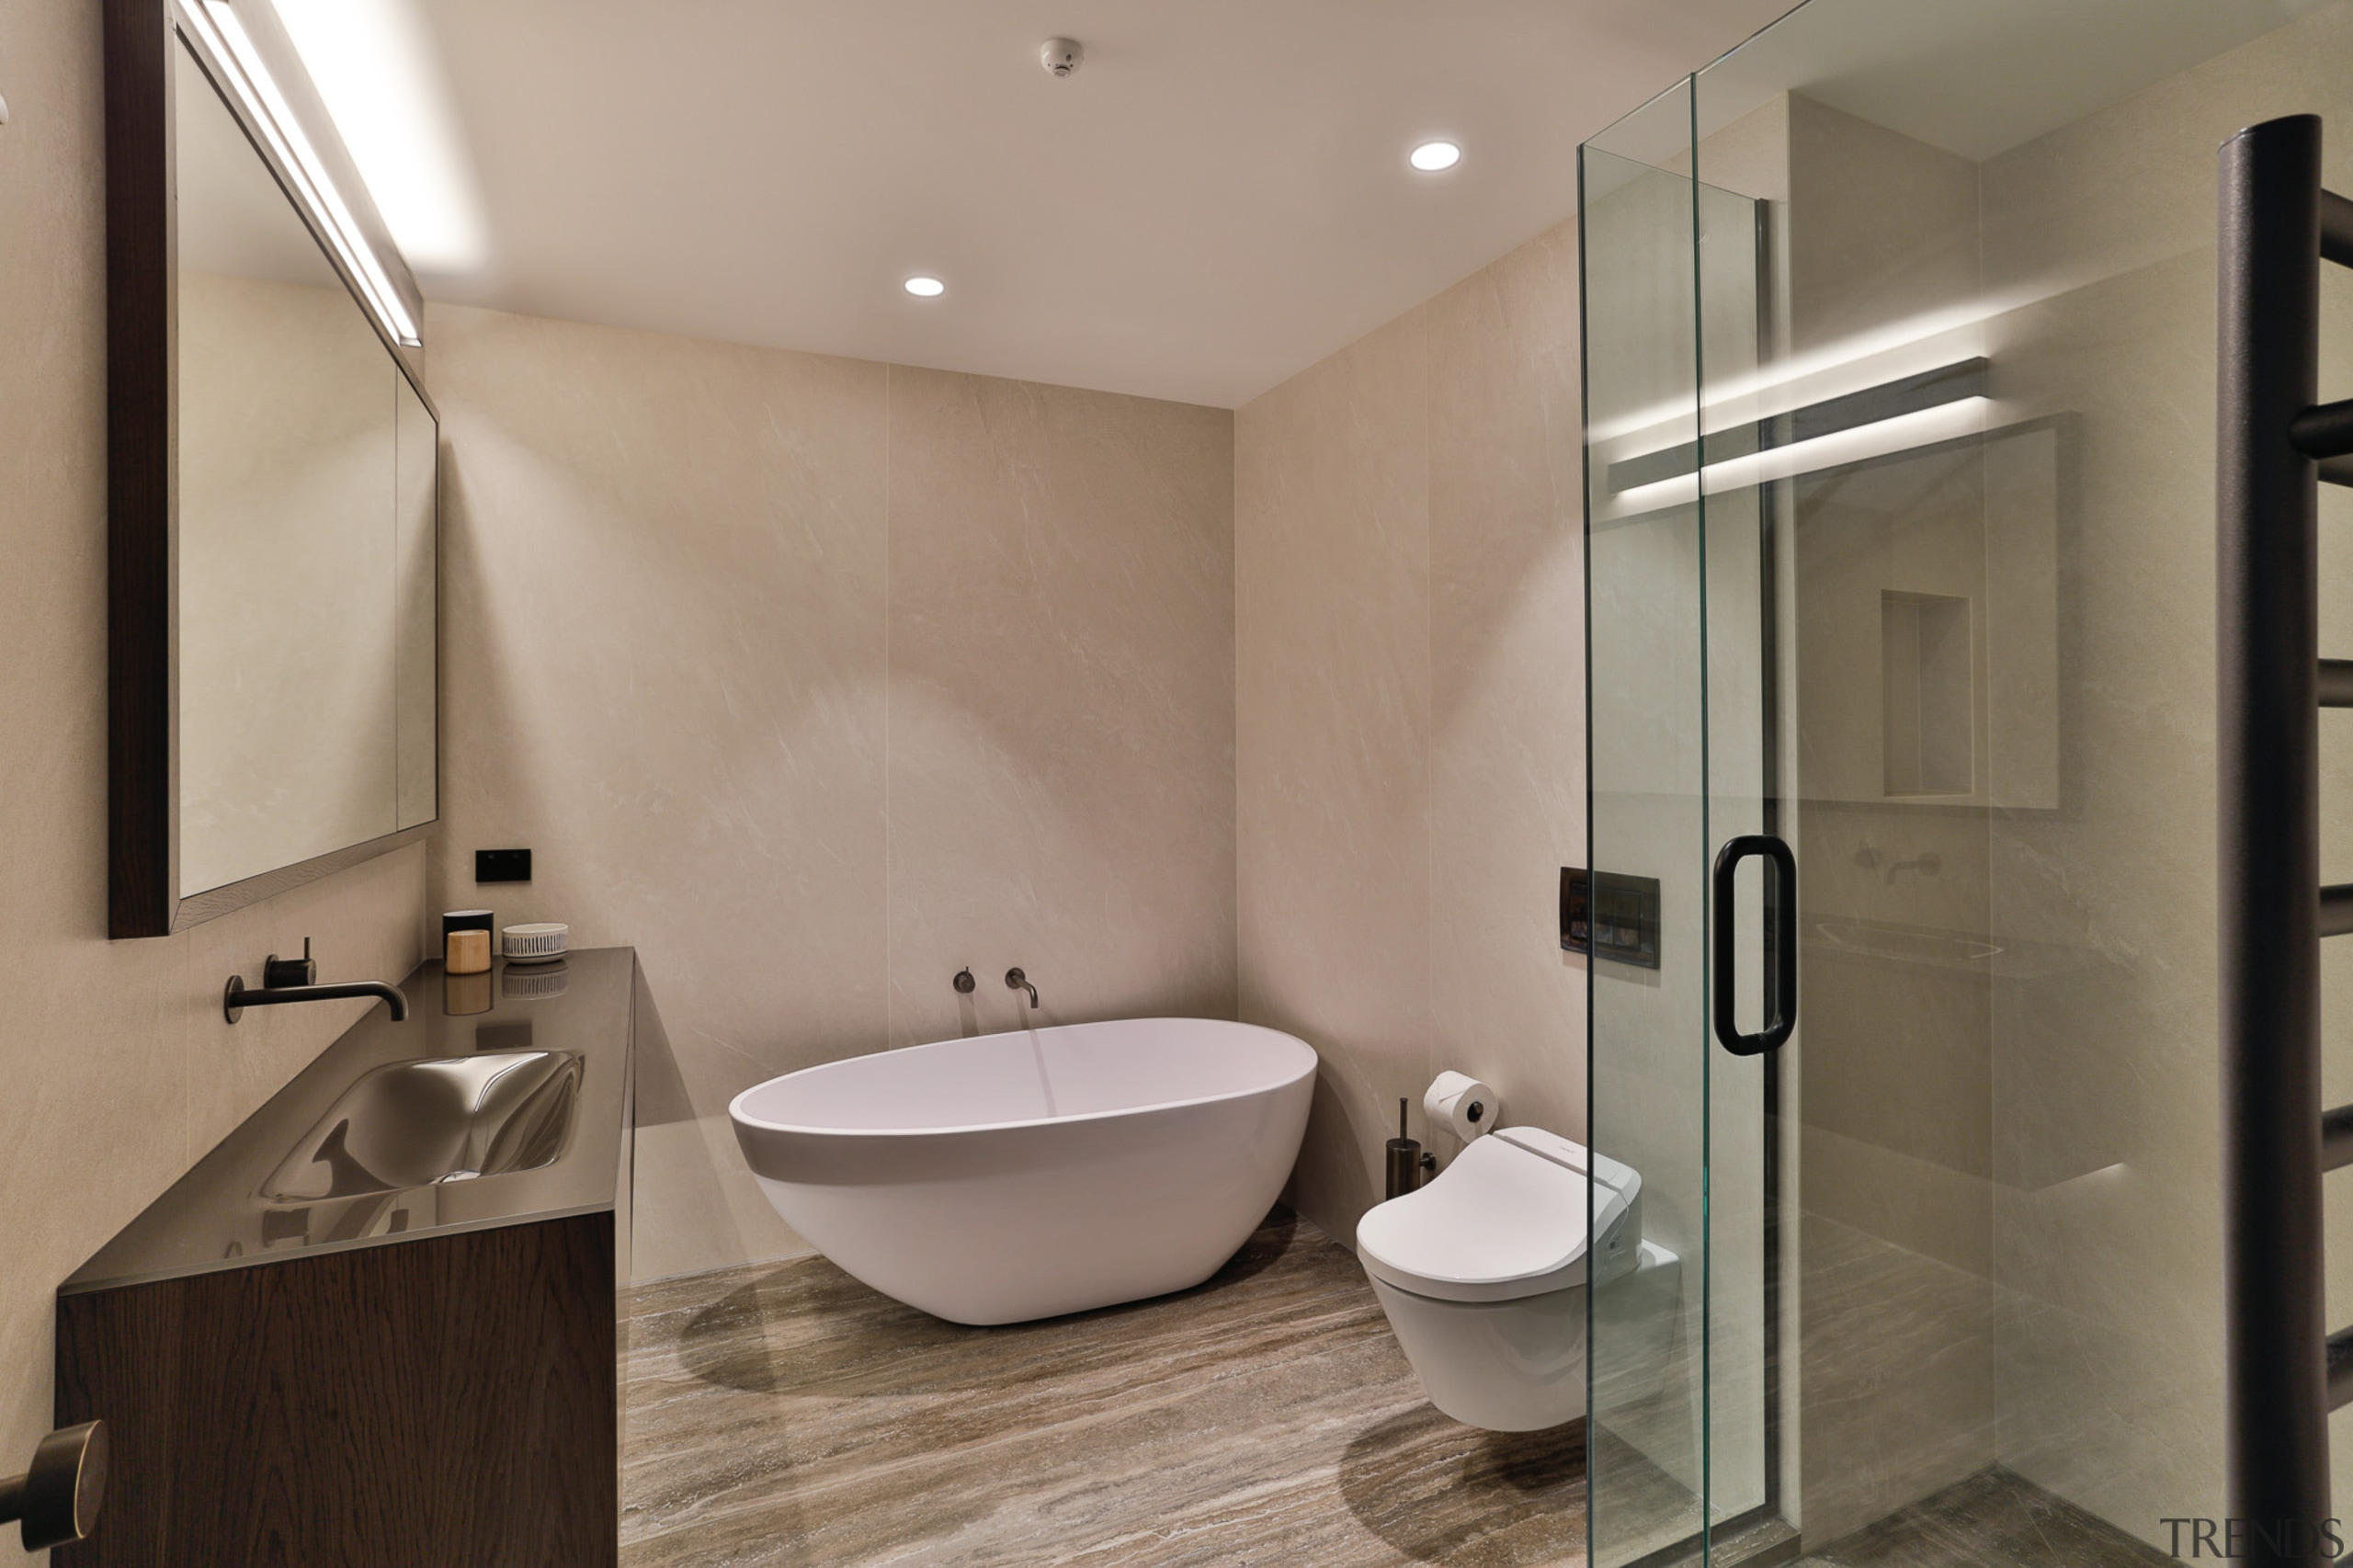 Shane George, Kitchens By Design – Finalist – architecture, bathroom, bidet, building, ceiling, ceramic, floor, home, house, interior design, material property, plumbing fixture, property, real estate, room, tap, tile, wall, gray, brown